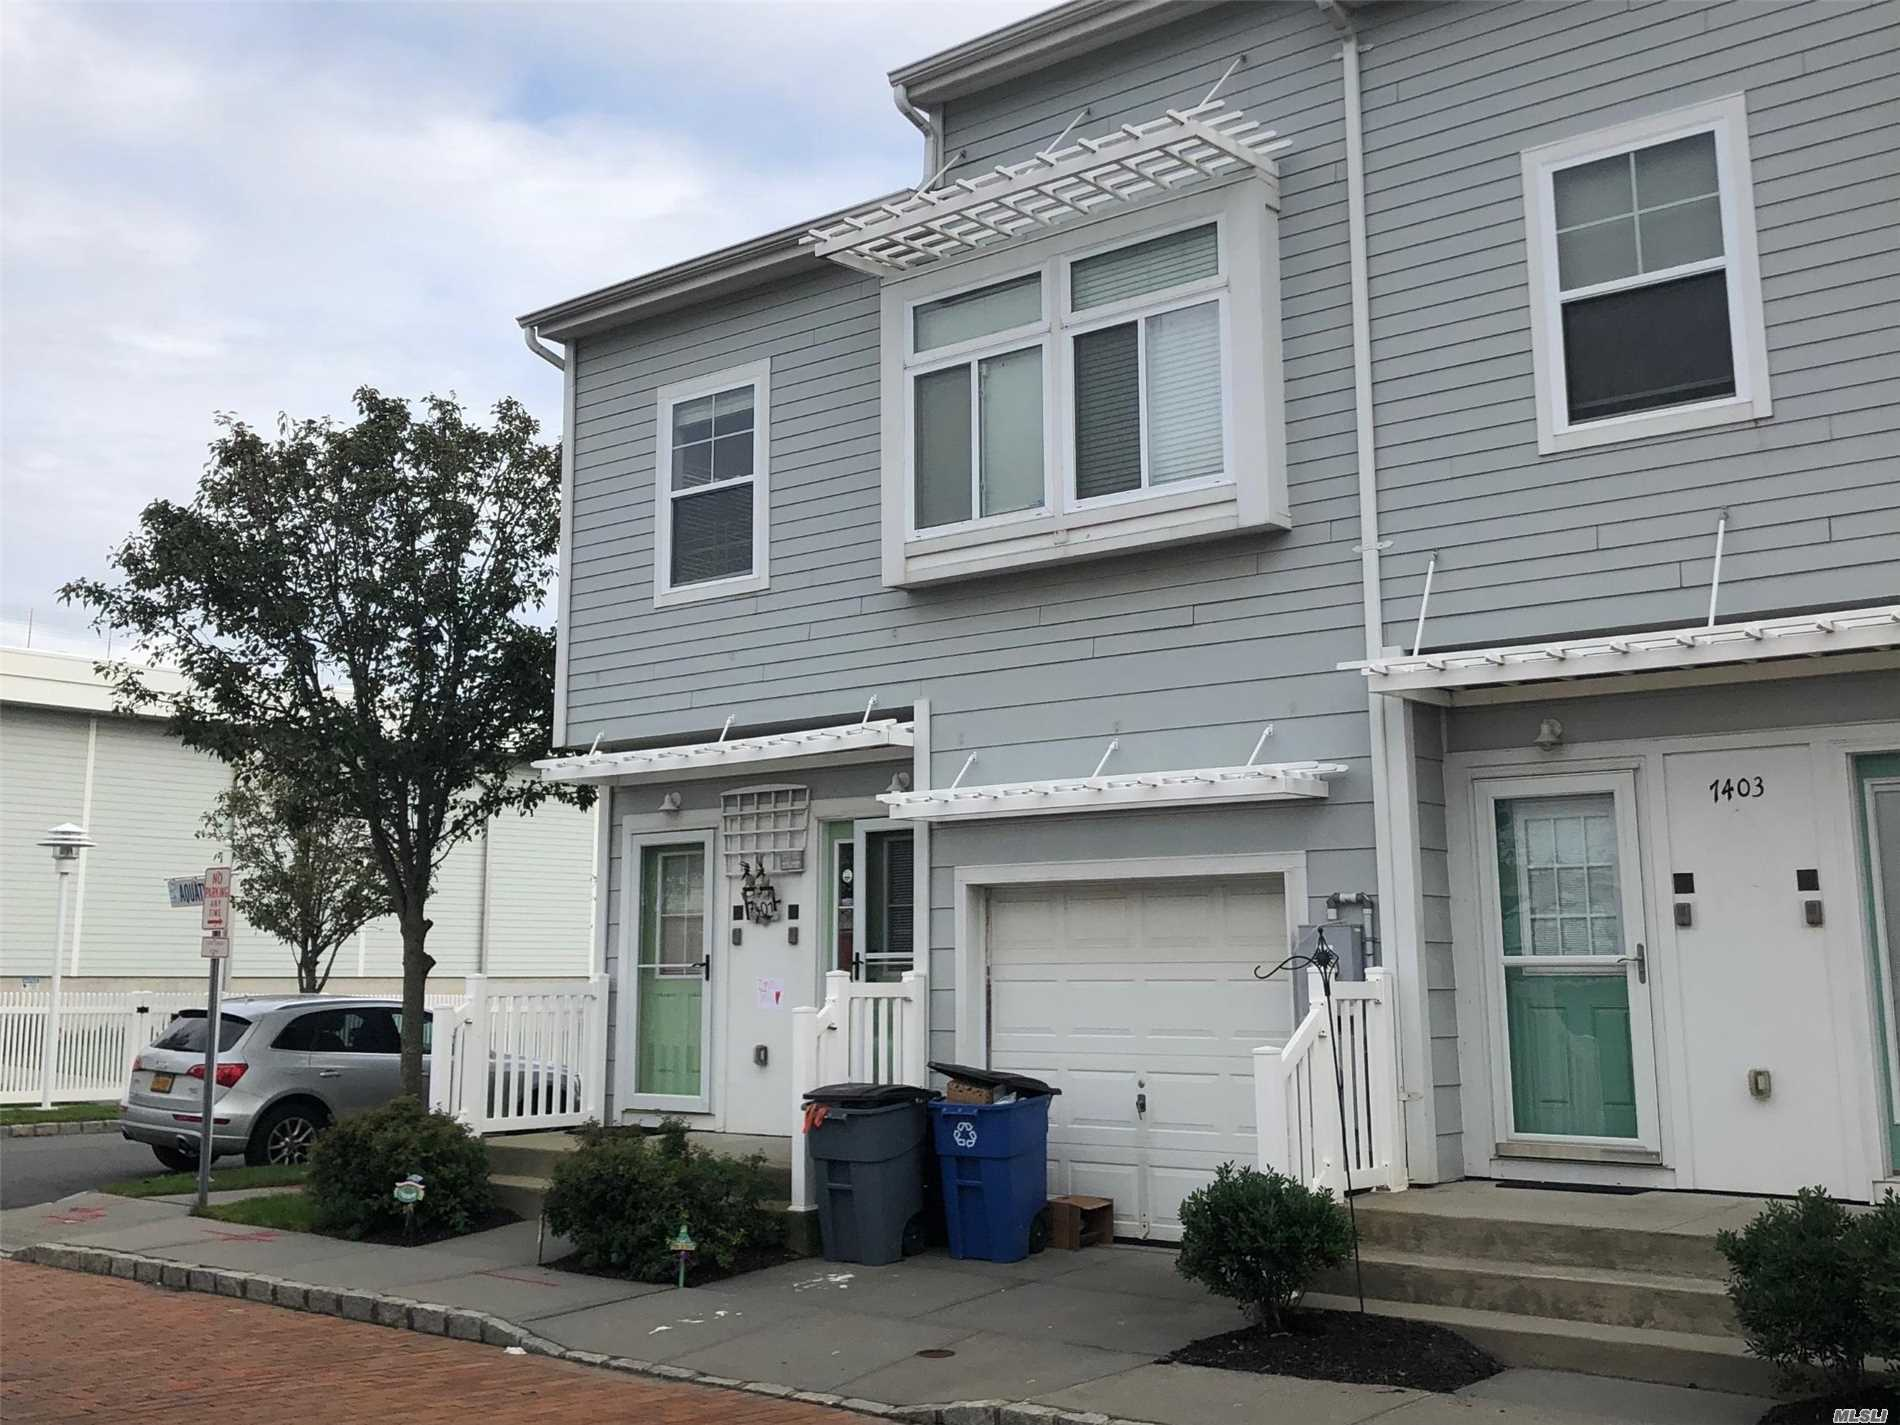 Property for sale at 7401 Aquatic Drive, Arverne NY 11692, Arverne,  New York 11692